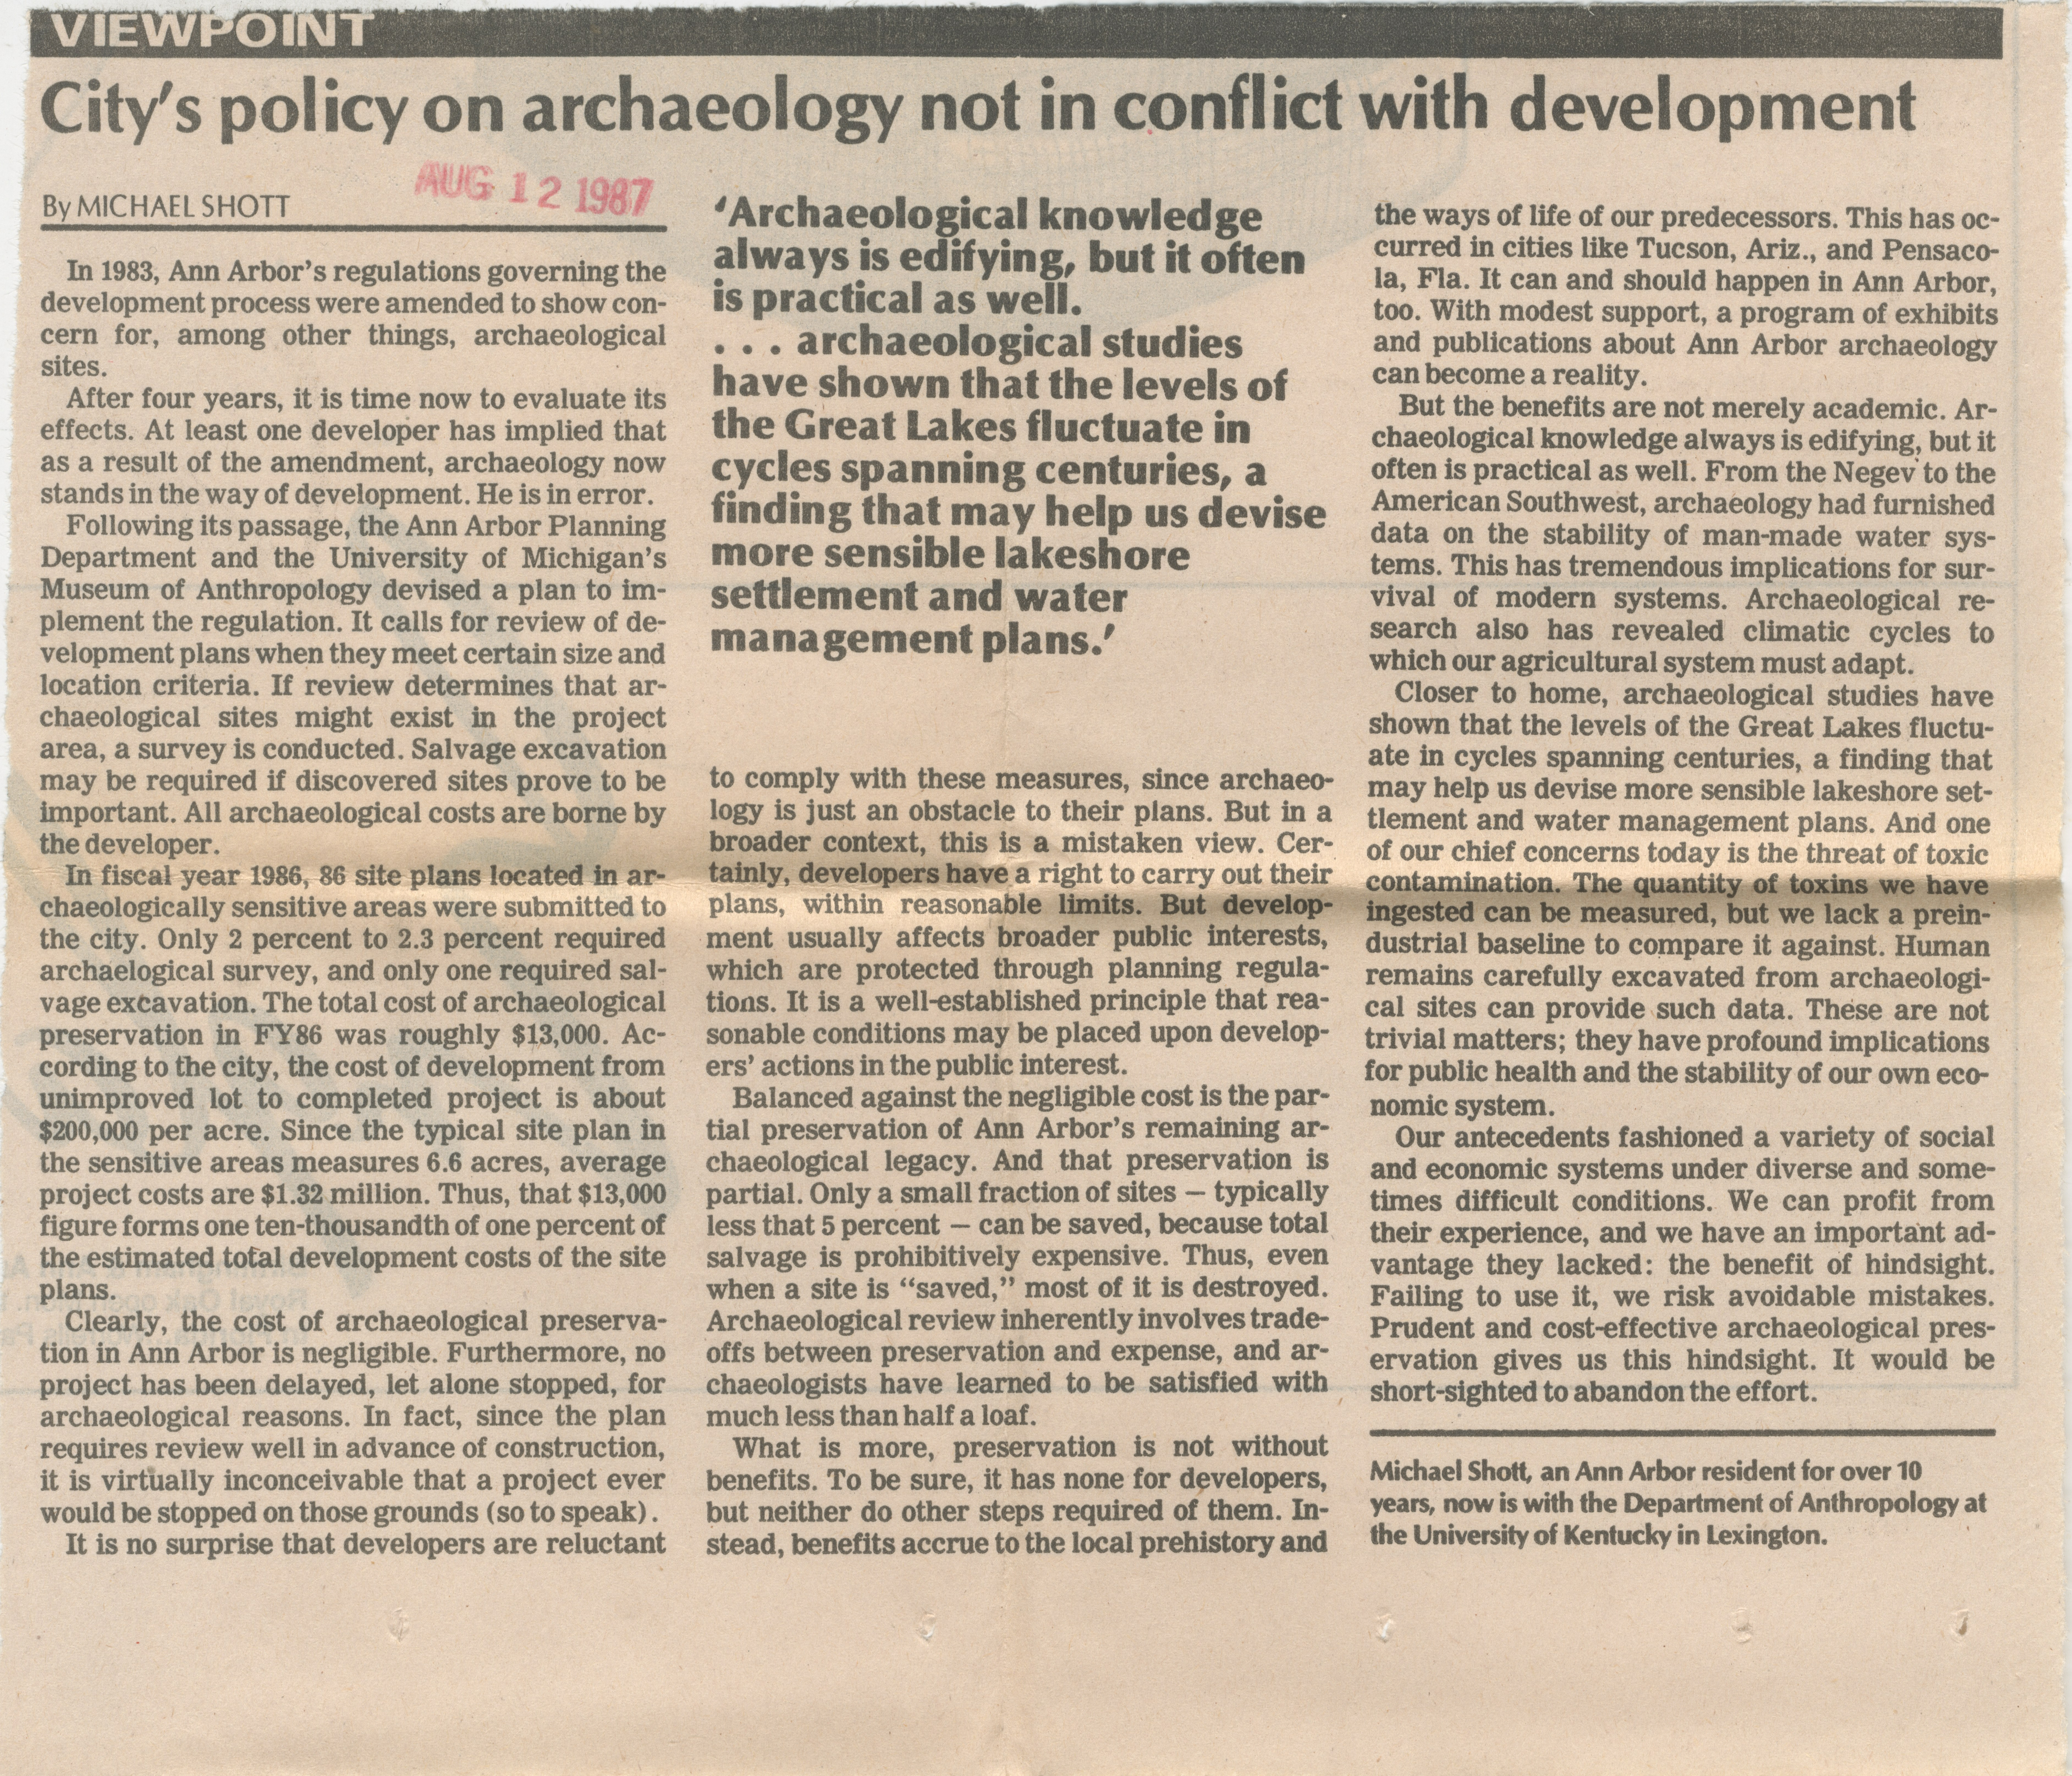 City's Policy On Archaeology Not In Conflict With Development image